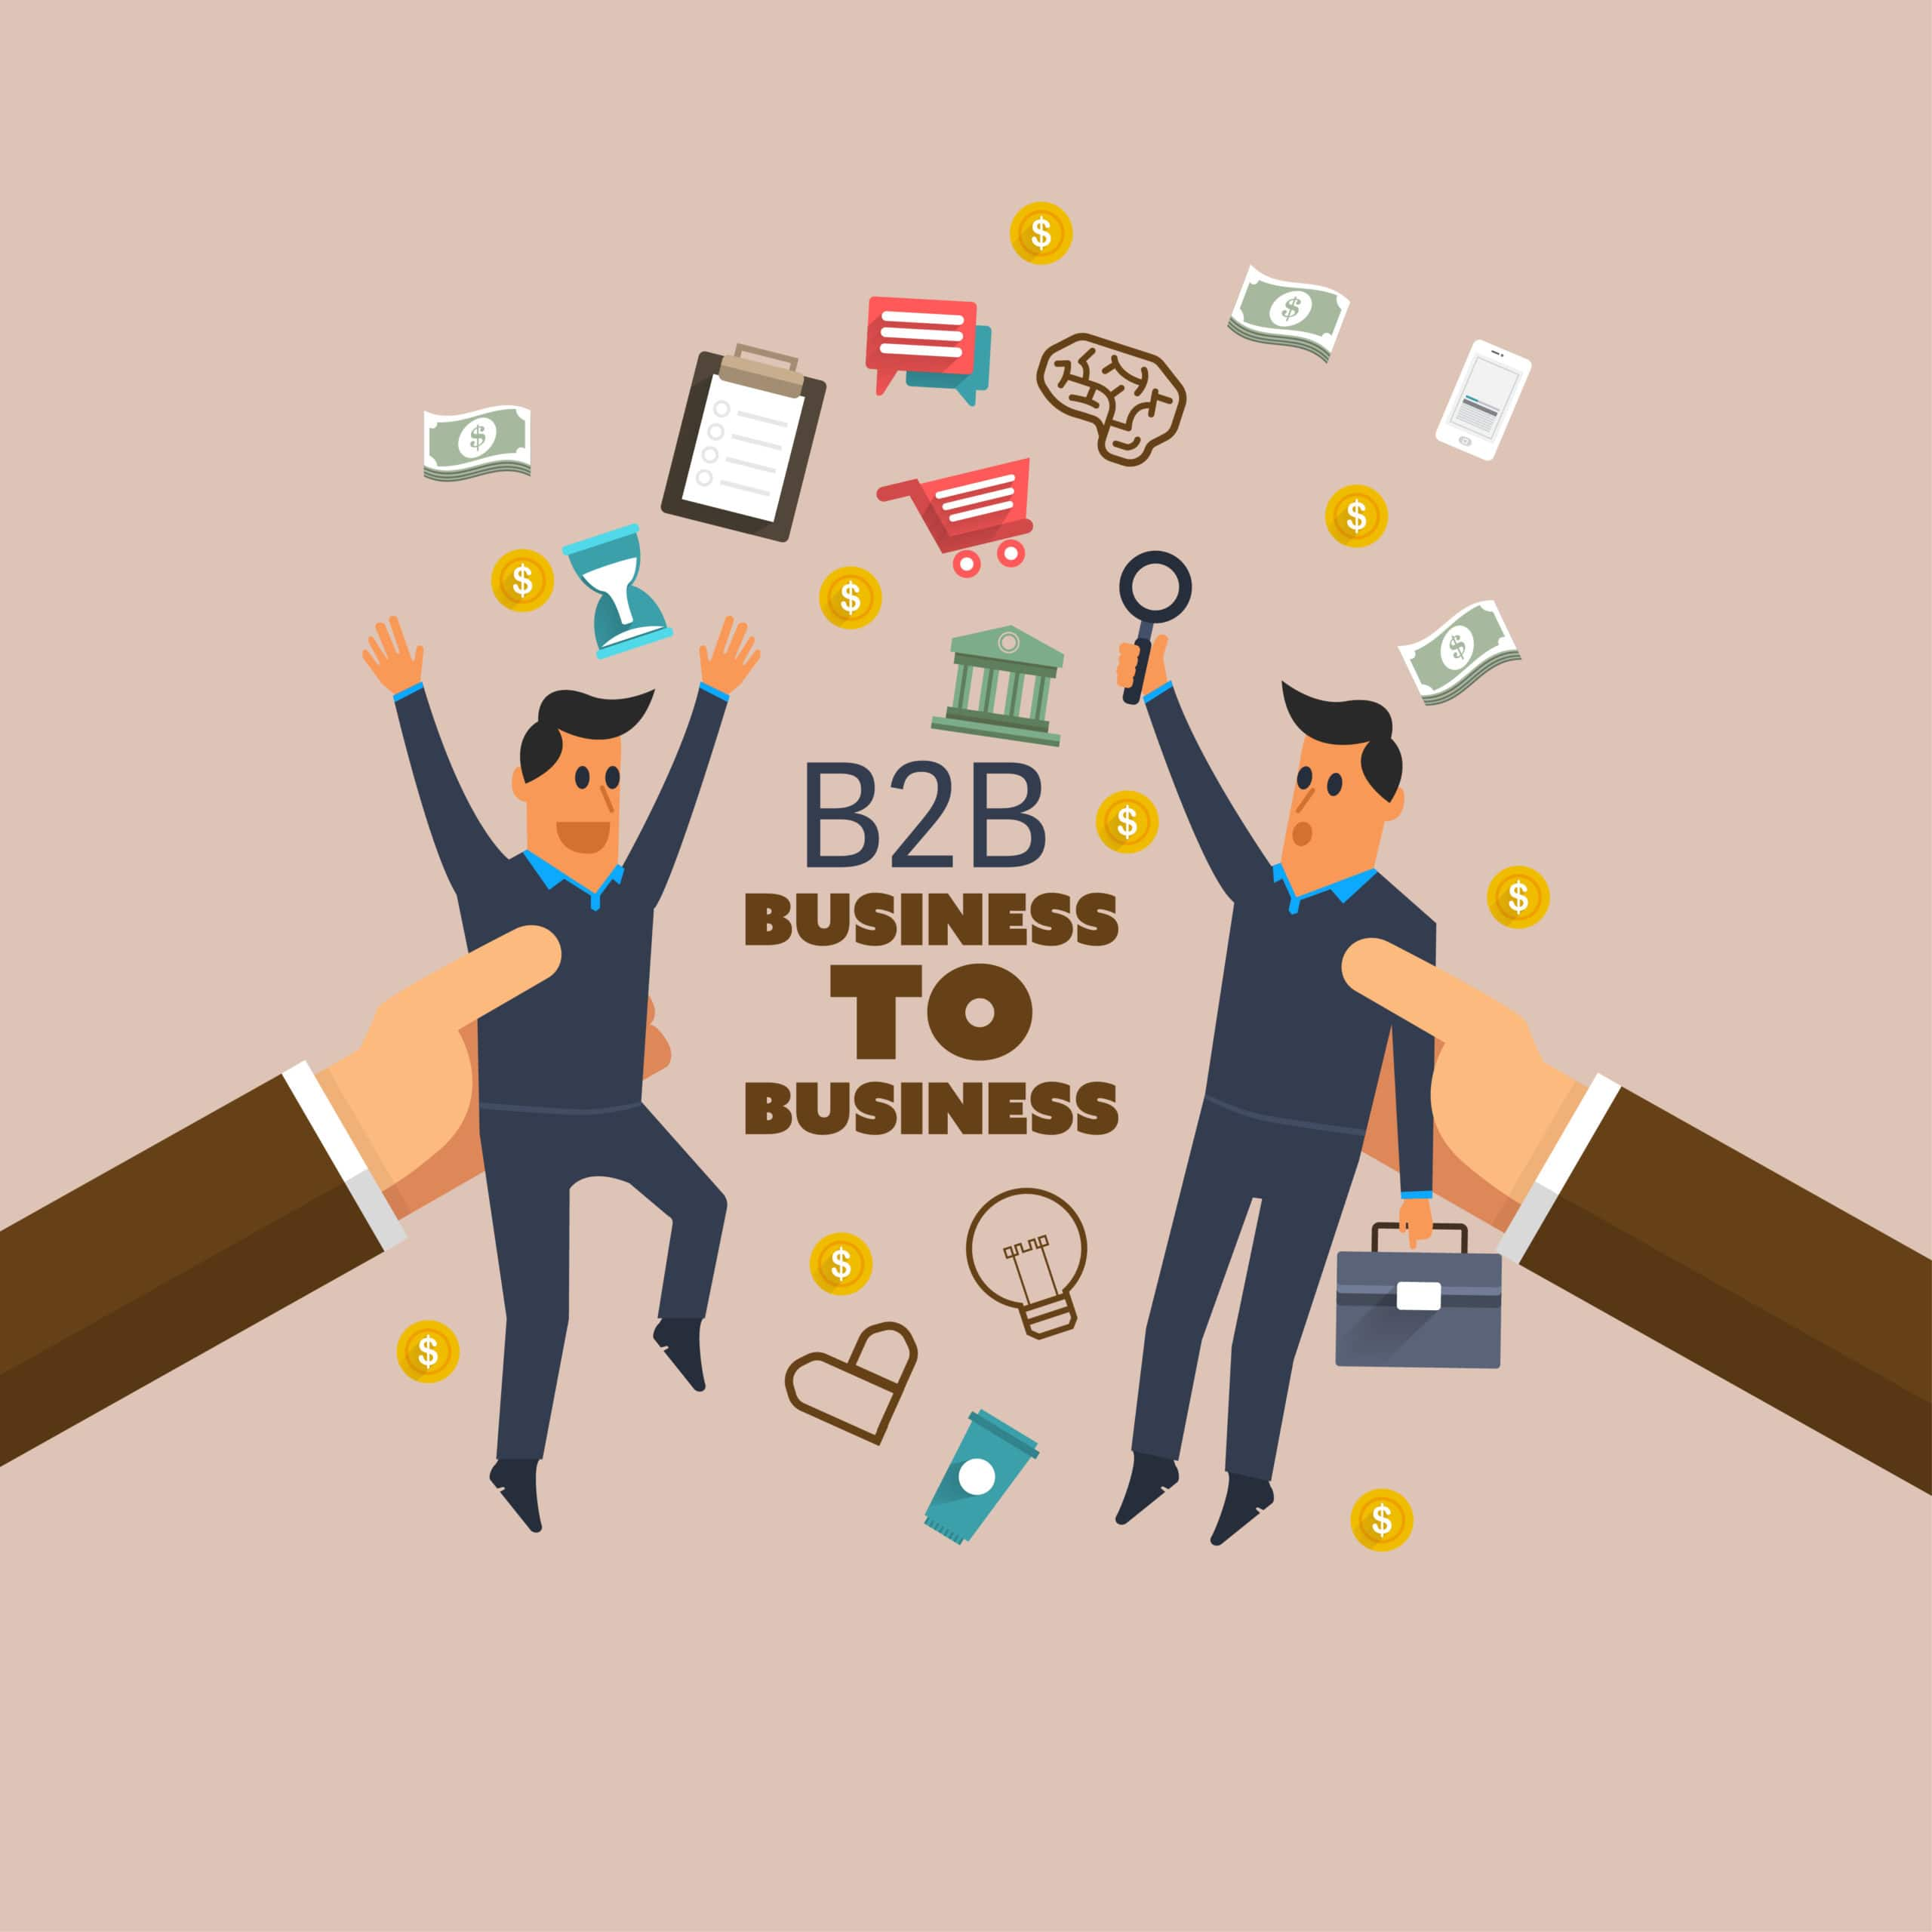 Blog B2B Business to Business